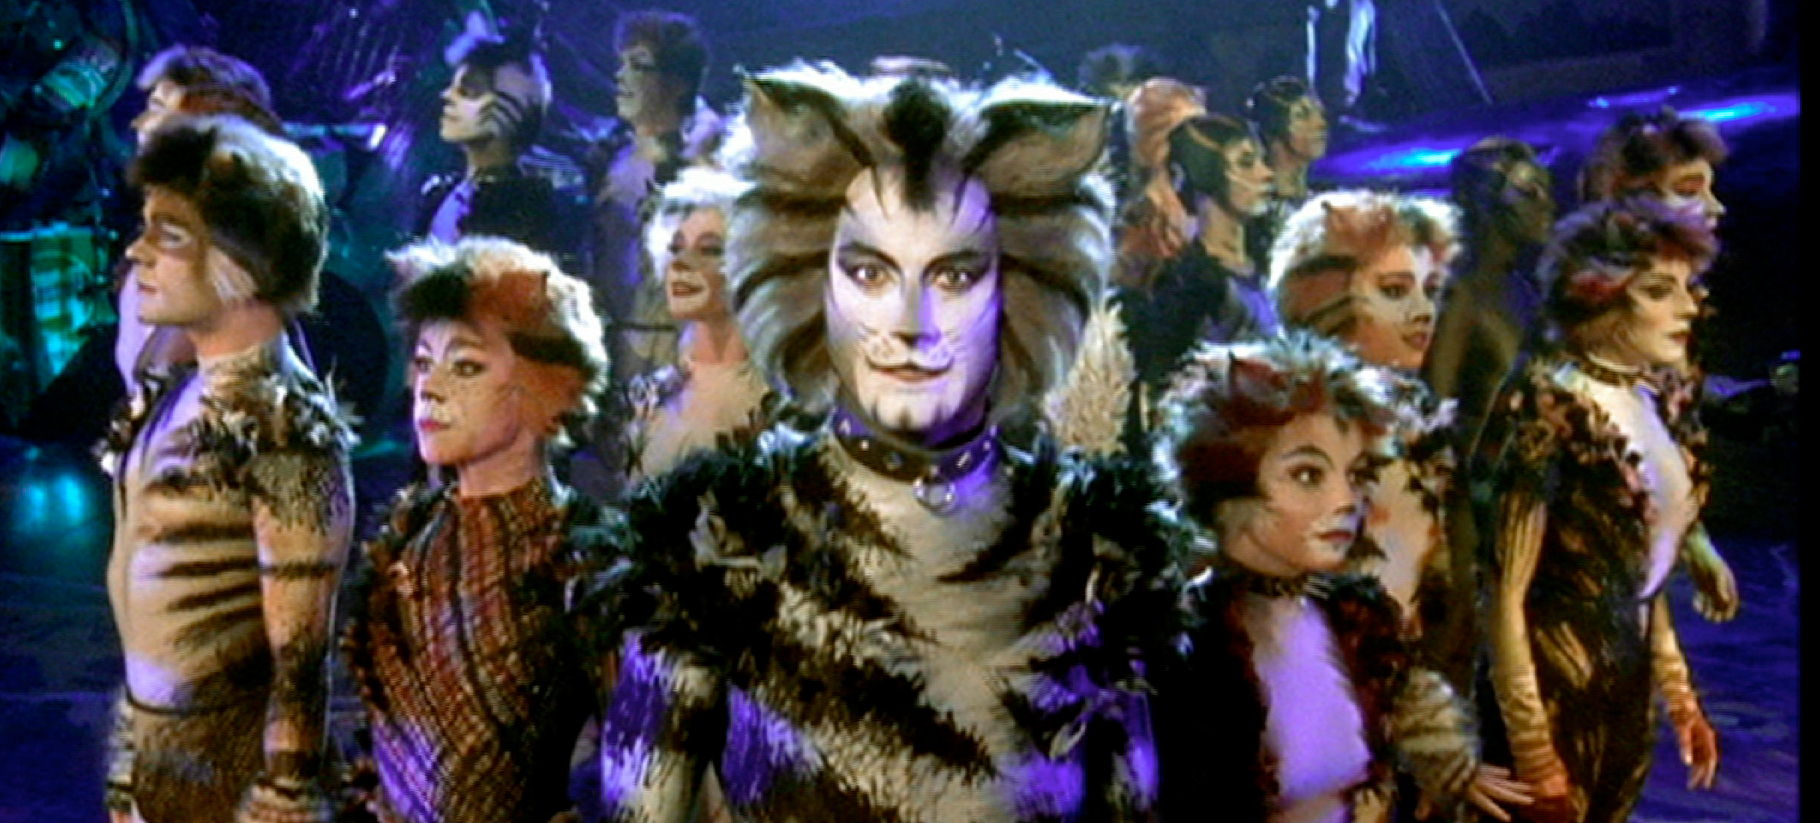 cats musical movie on the way from director tom hooper